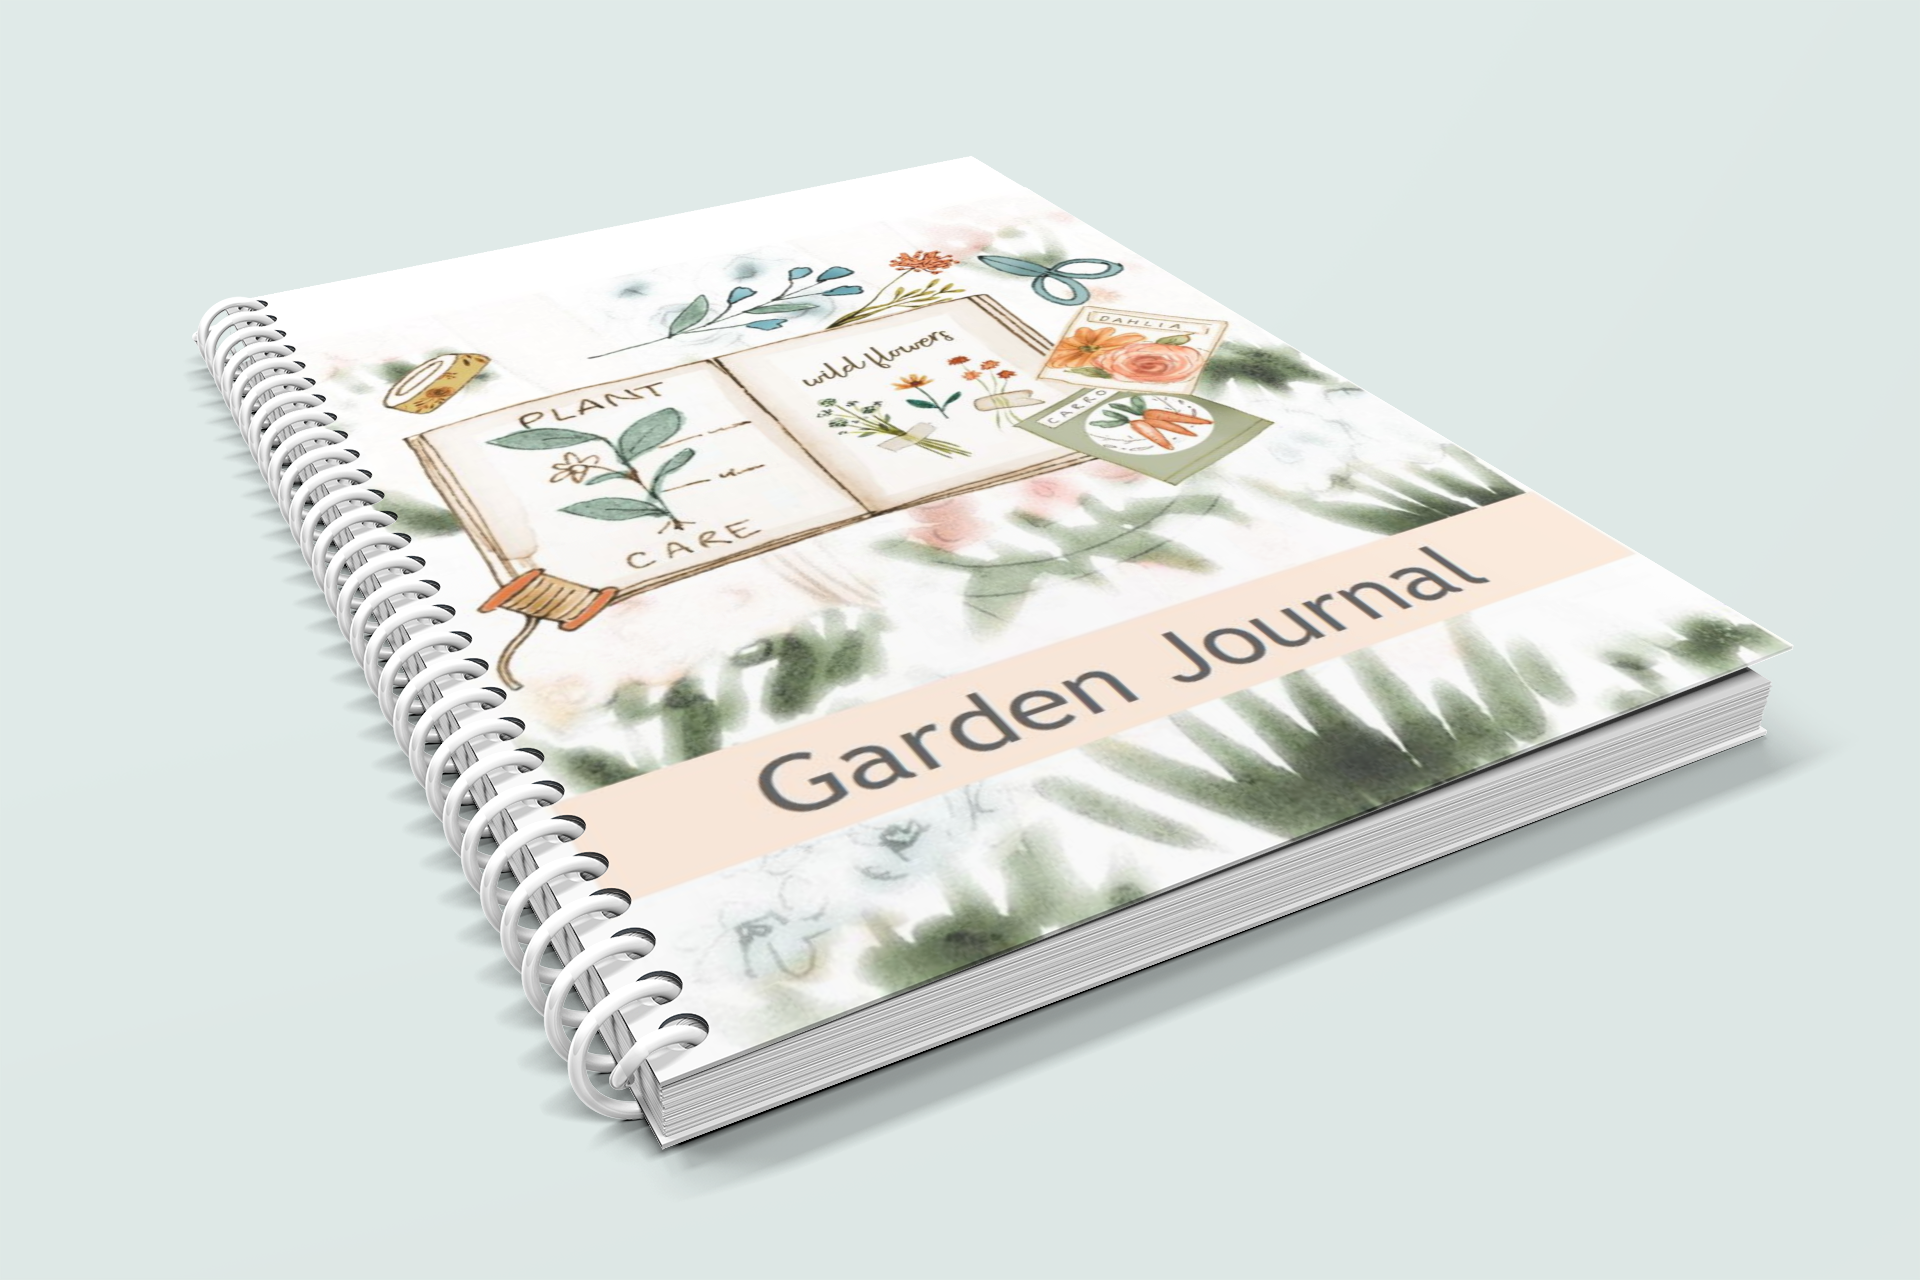 The Gardening Journal - Coil Bound